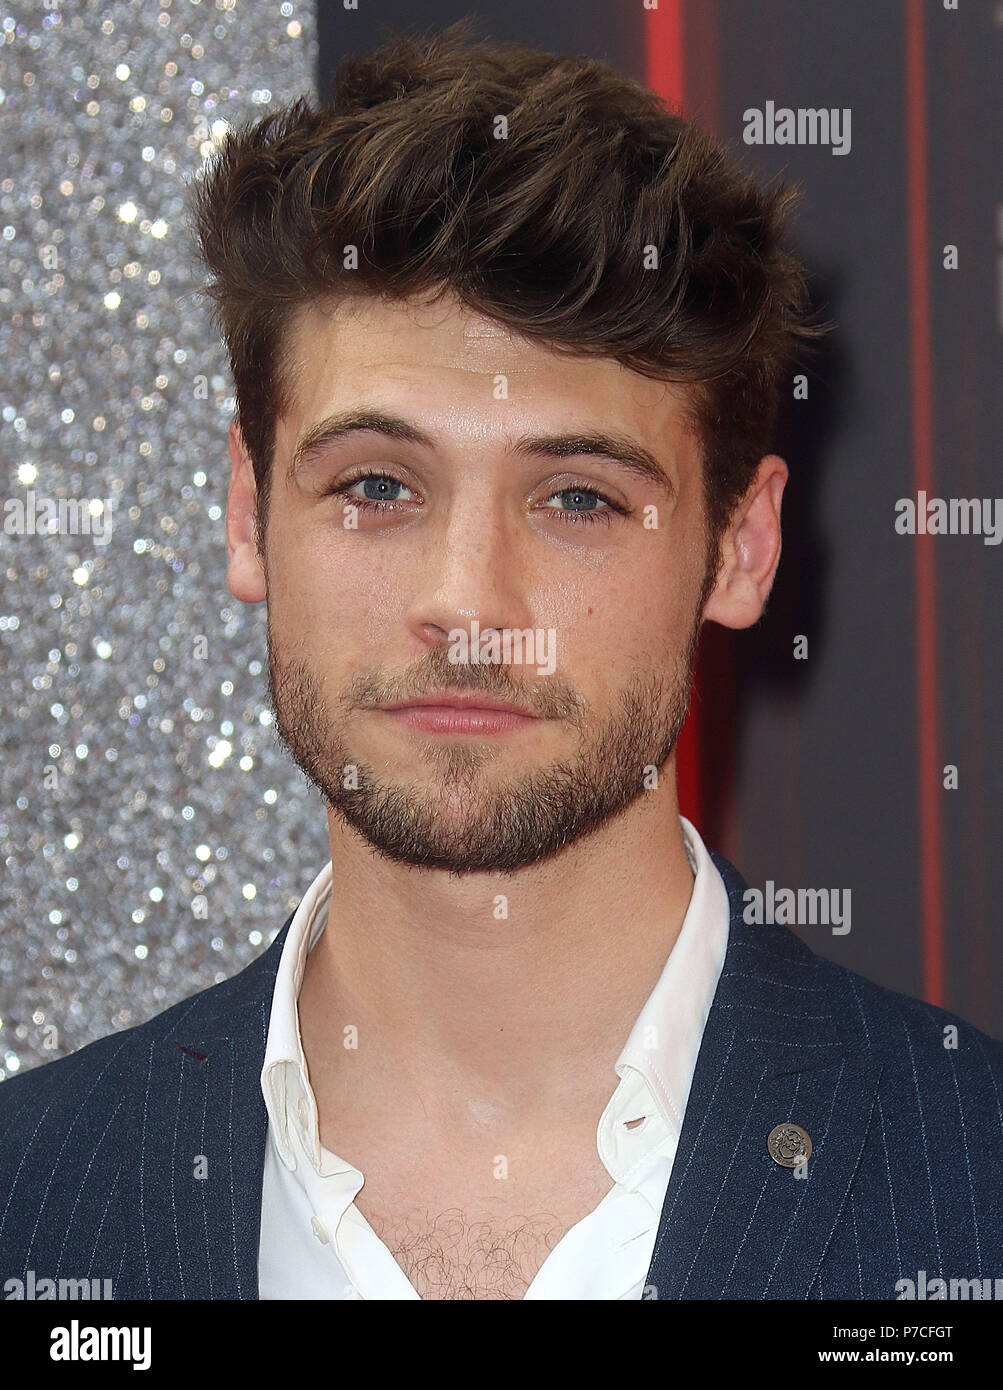 Jun 06, 2018 - Ned Porteous attending British Soap Awards 2018, Hackney Empire in London, England, UK - Stock Image